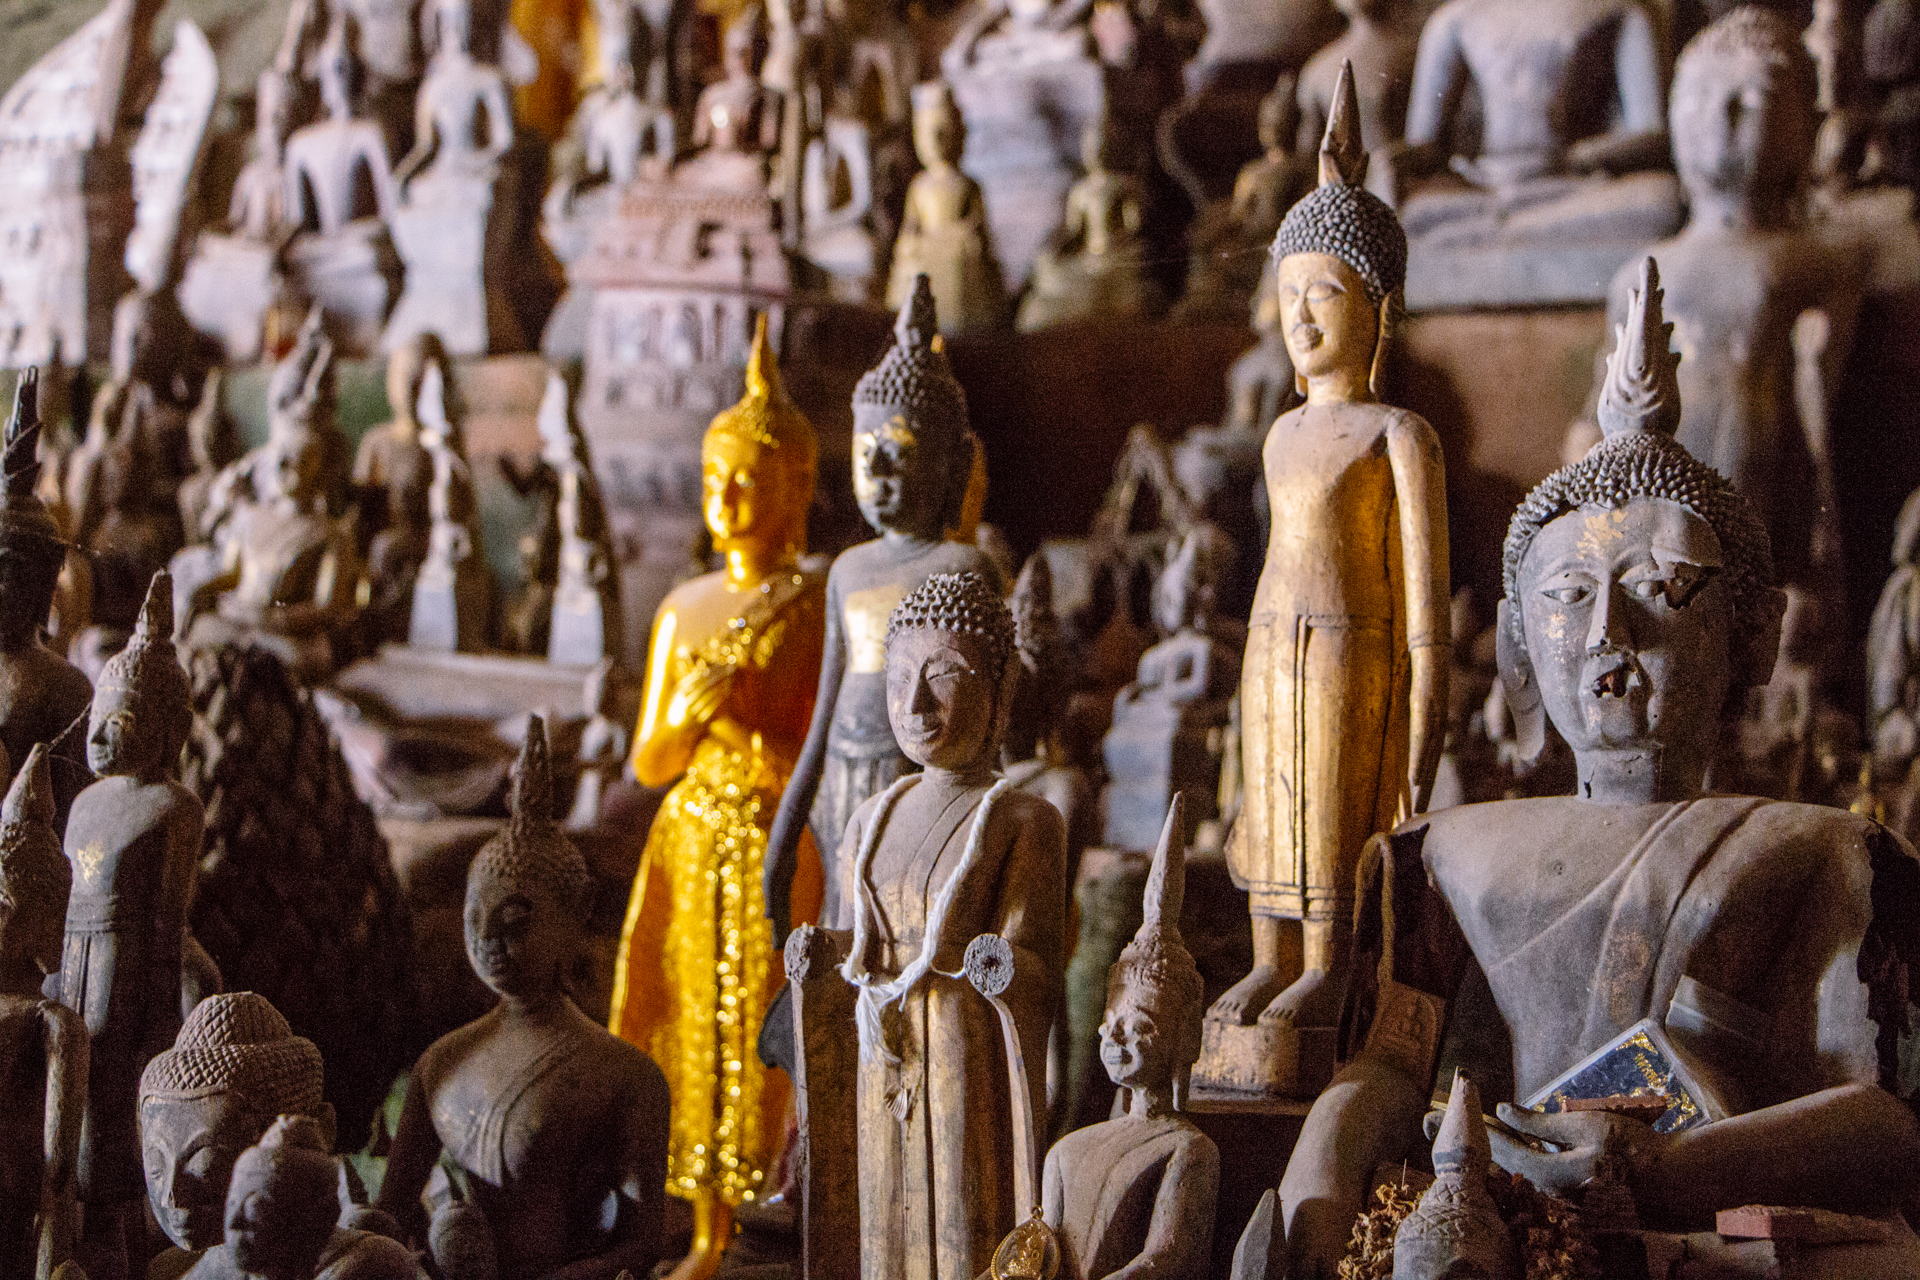 Pak Ou Caves hundreds of Buddhist Statues